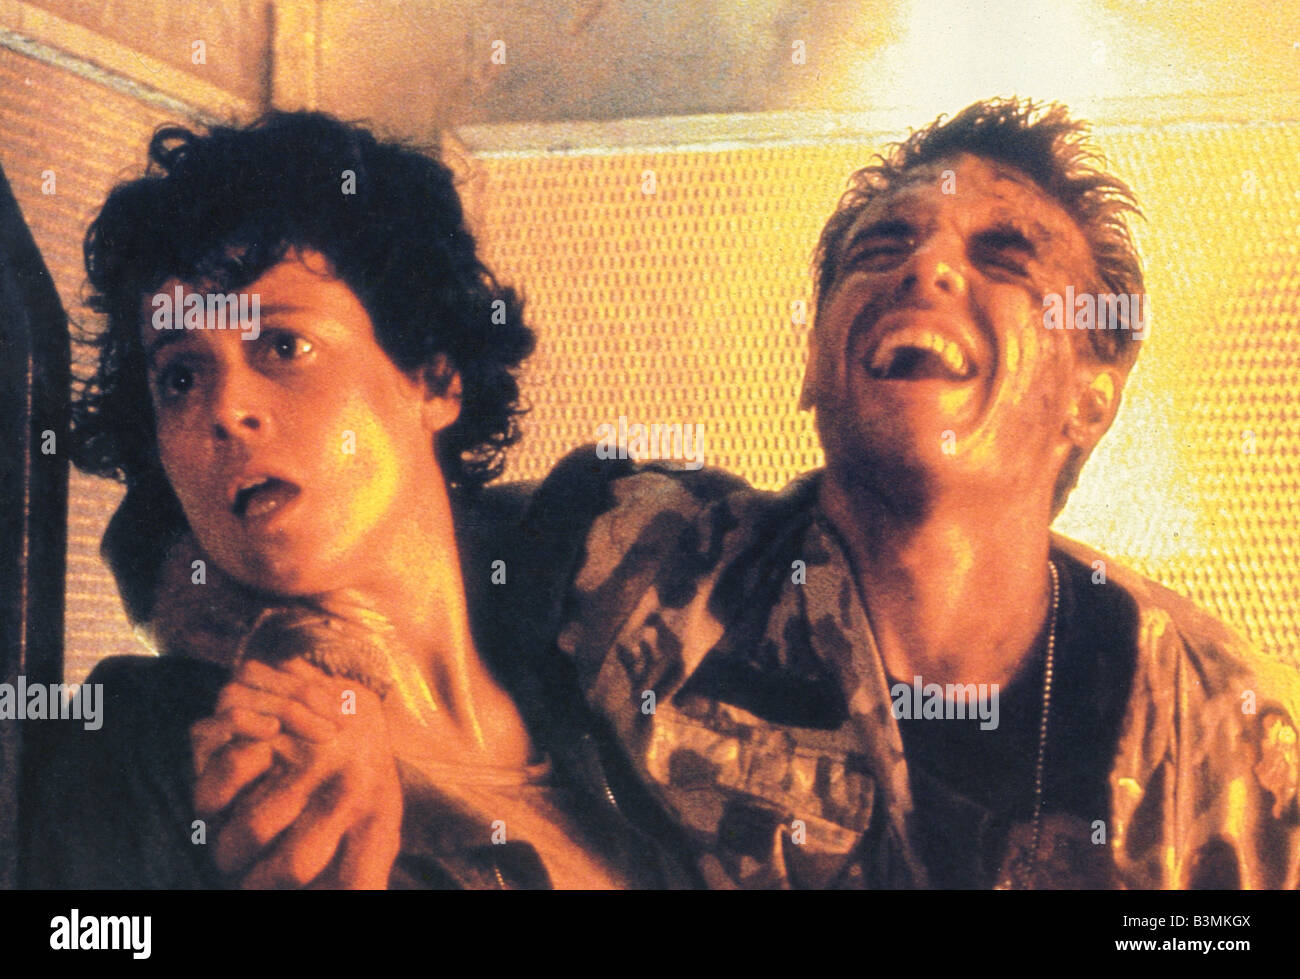 ALIENS 1986 TCF/Brandywine film with Sigourney Weaver - Stock Image